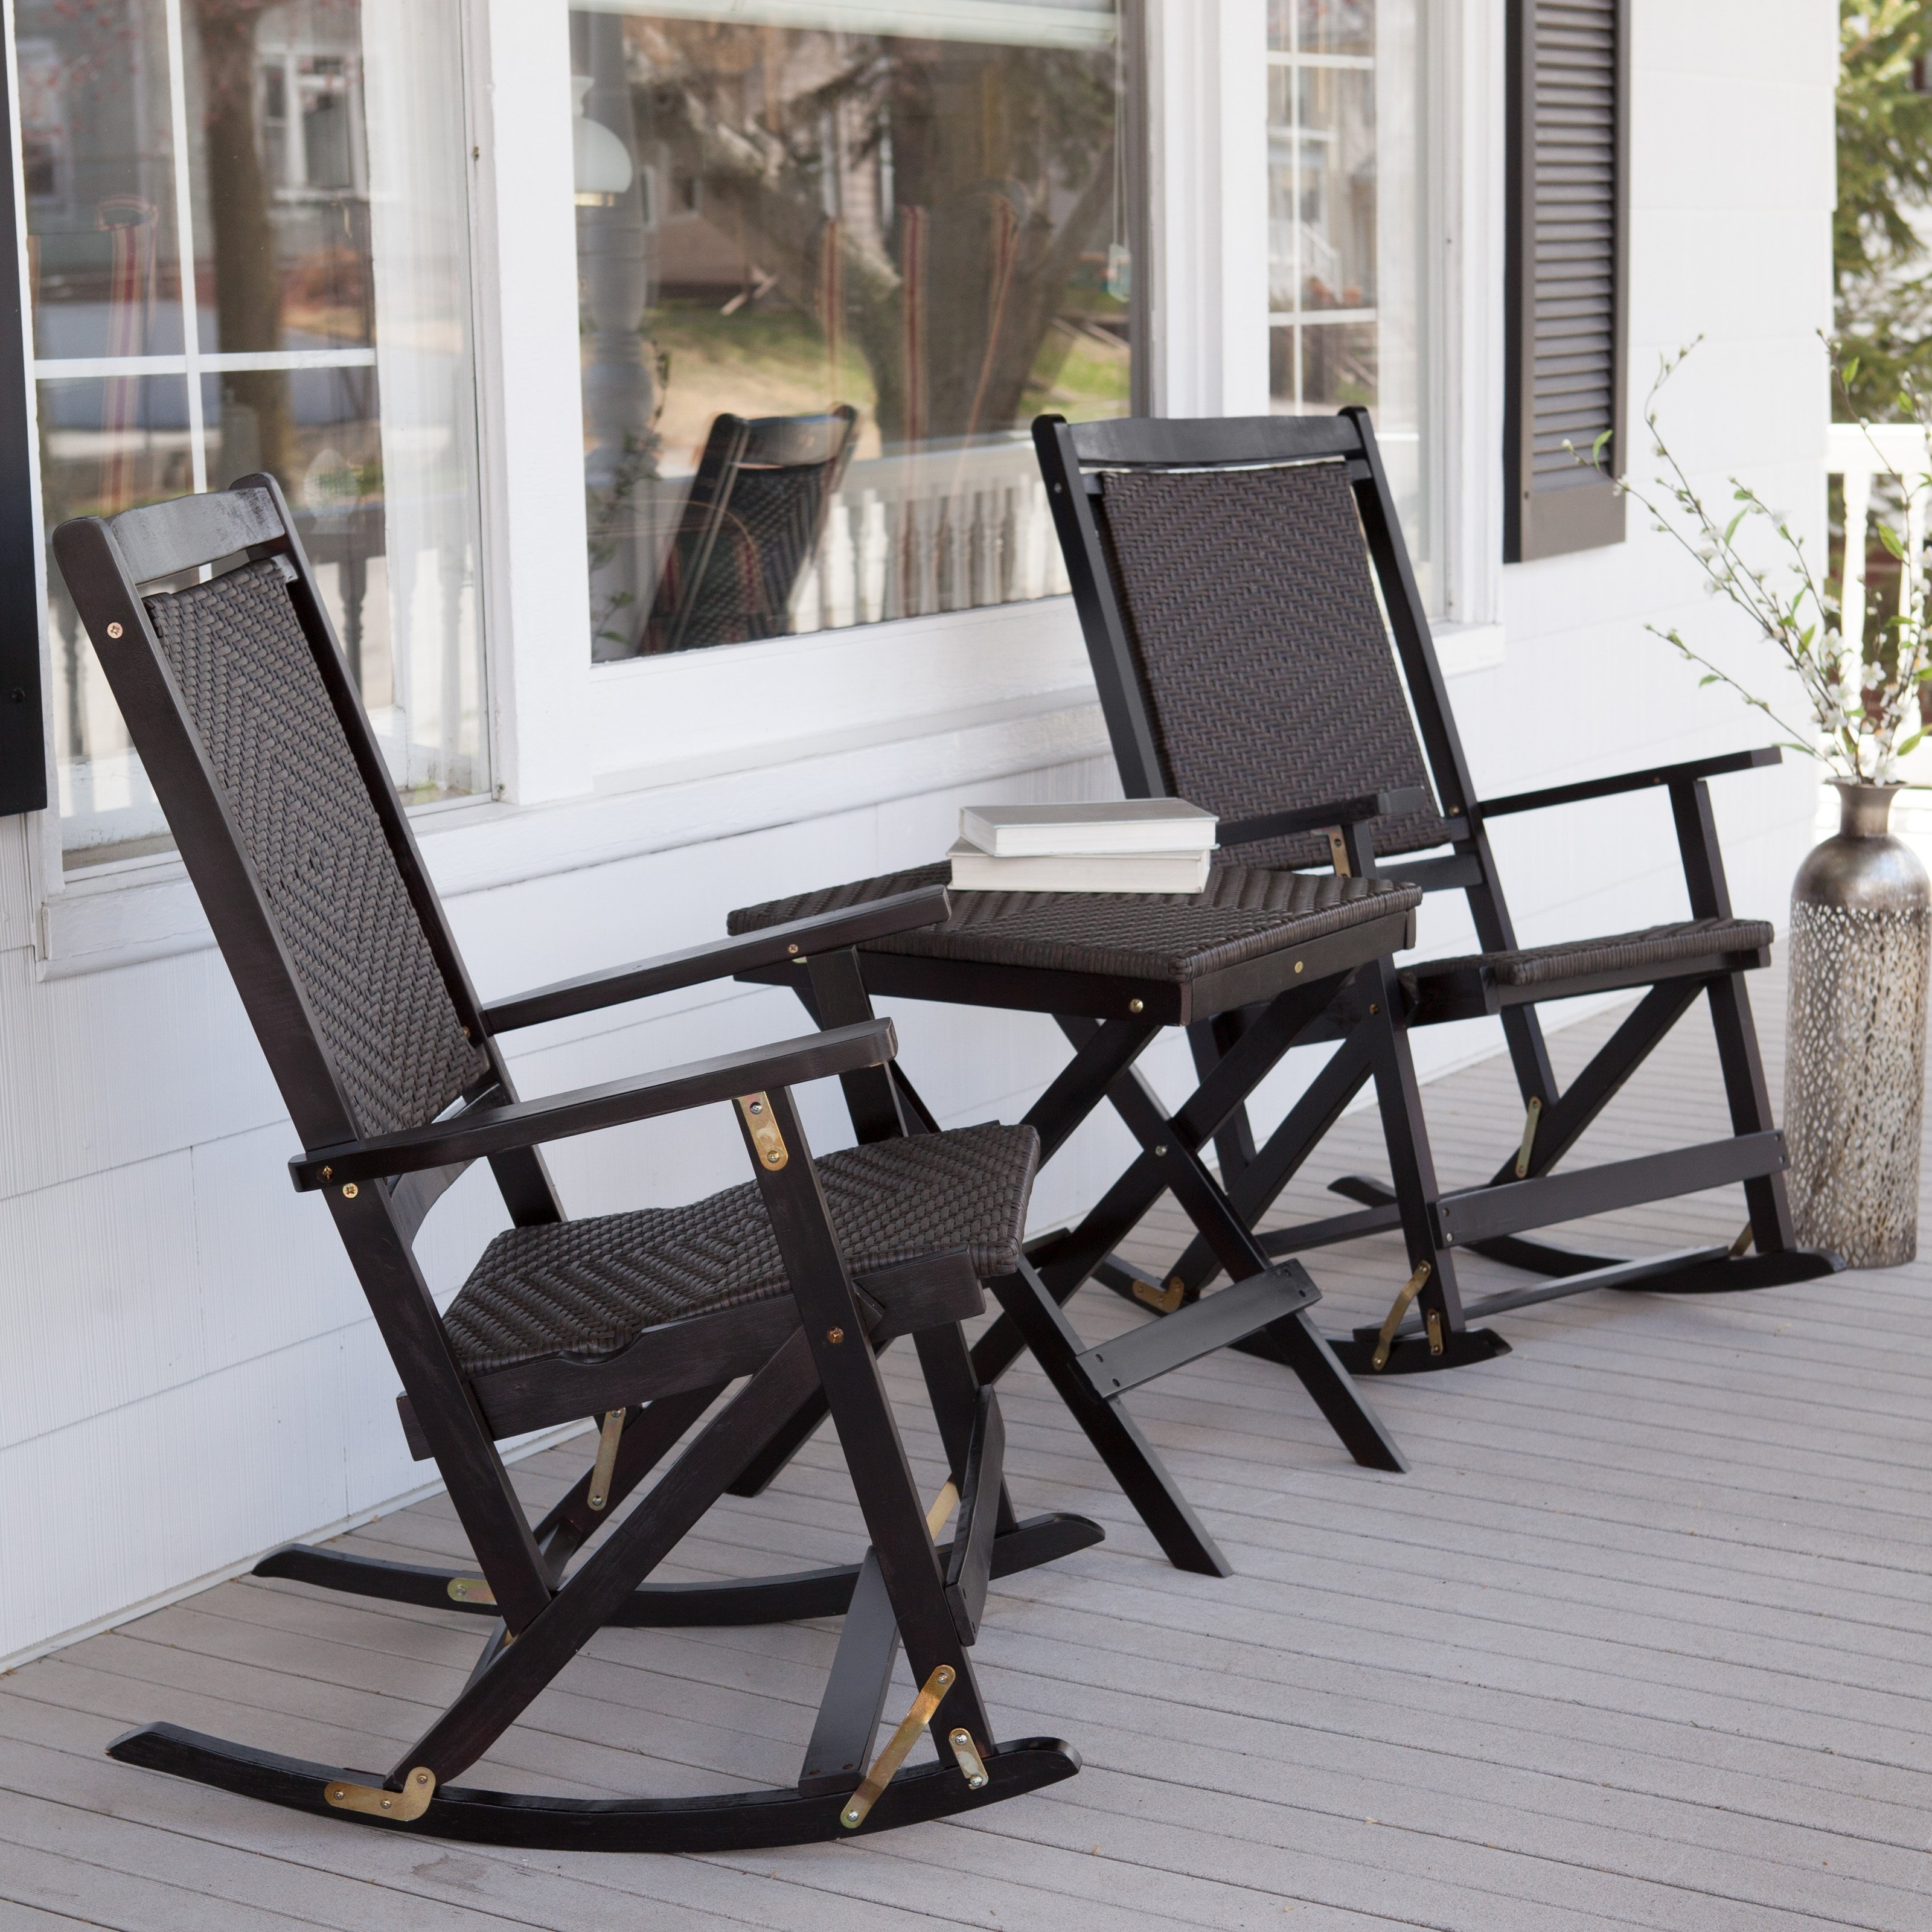 Furniture: Coral Coast Willow Bay Folding Resin Wicker Rocking Chair In Famous White Resin Patio Rocking Chairs (View 13 of 15)